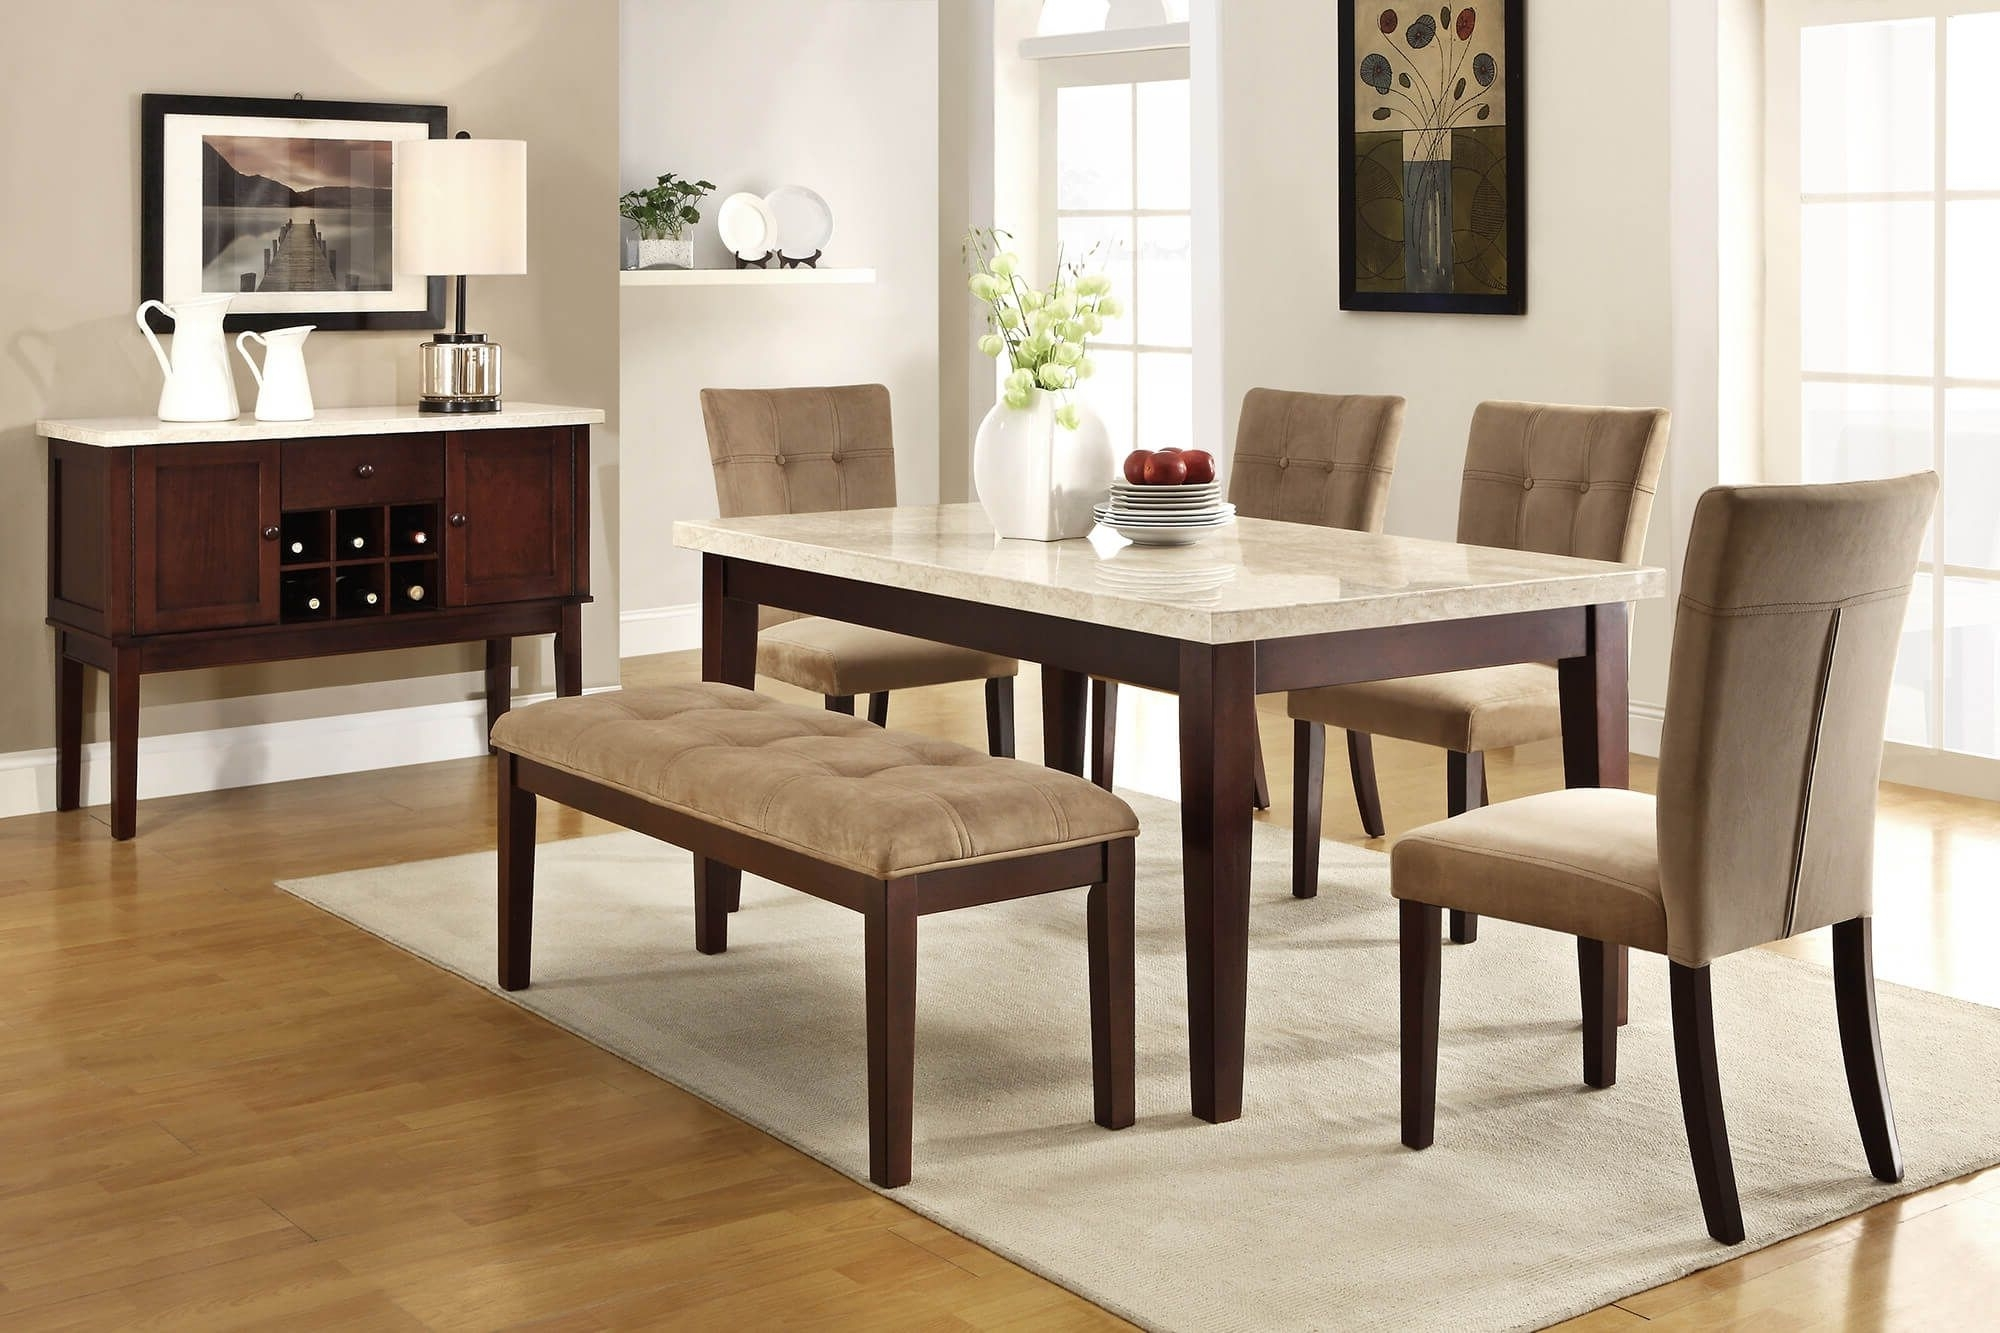 Palazzo 7 Piece Dining Sets With Pearson White Side Chairs For 2017 26 Dining Room Sets (Big And Small) With Bench Seating (2018) (View 8 of 25)